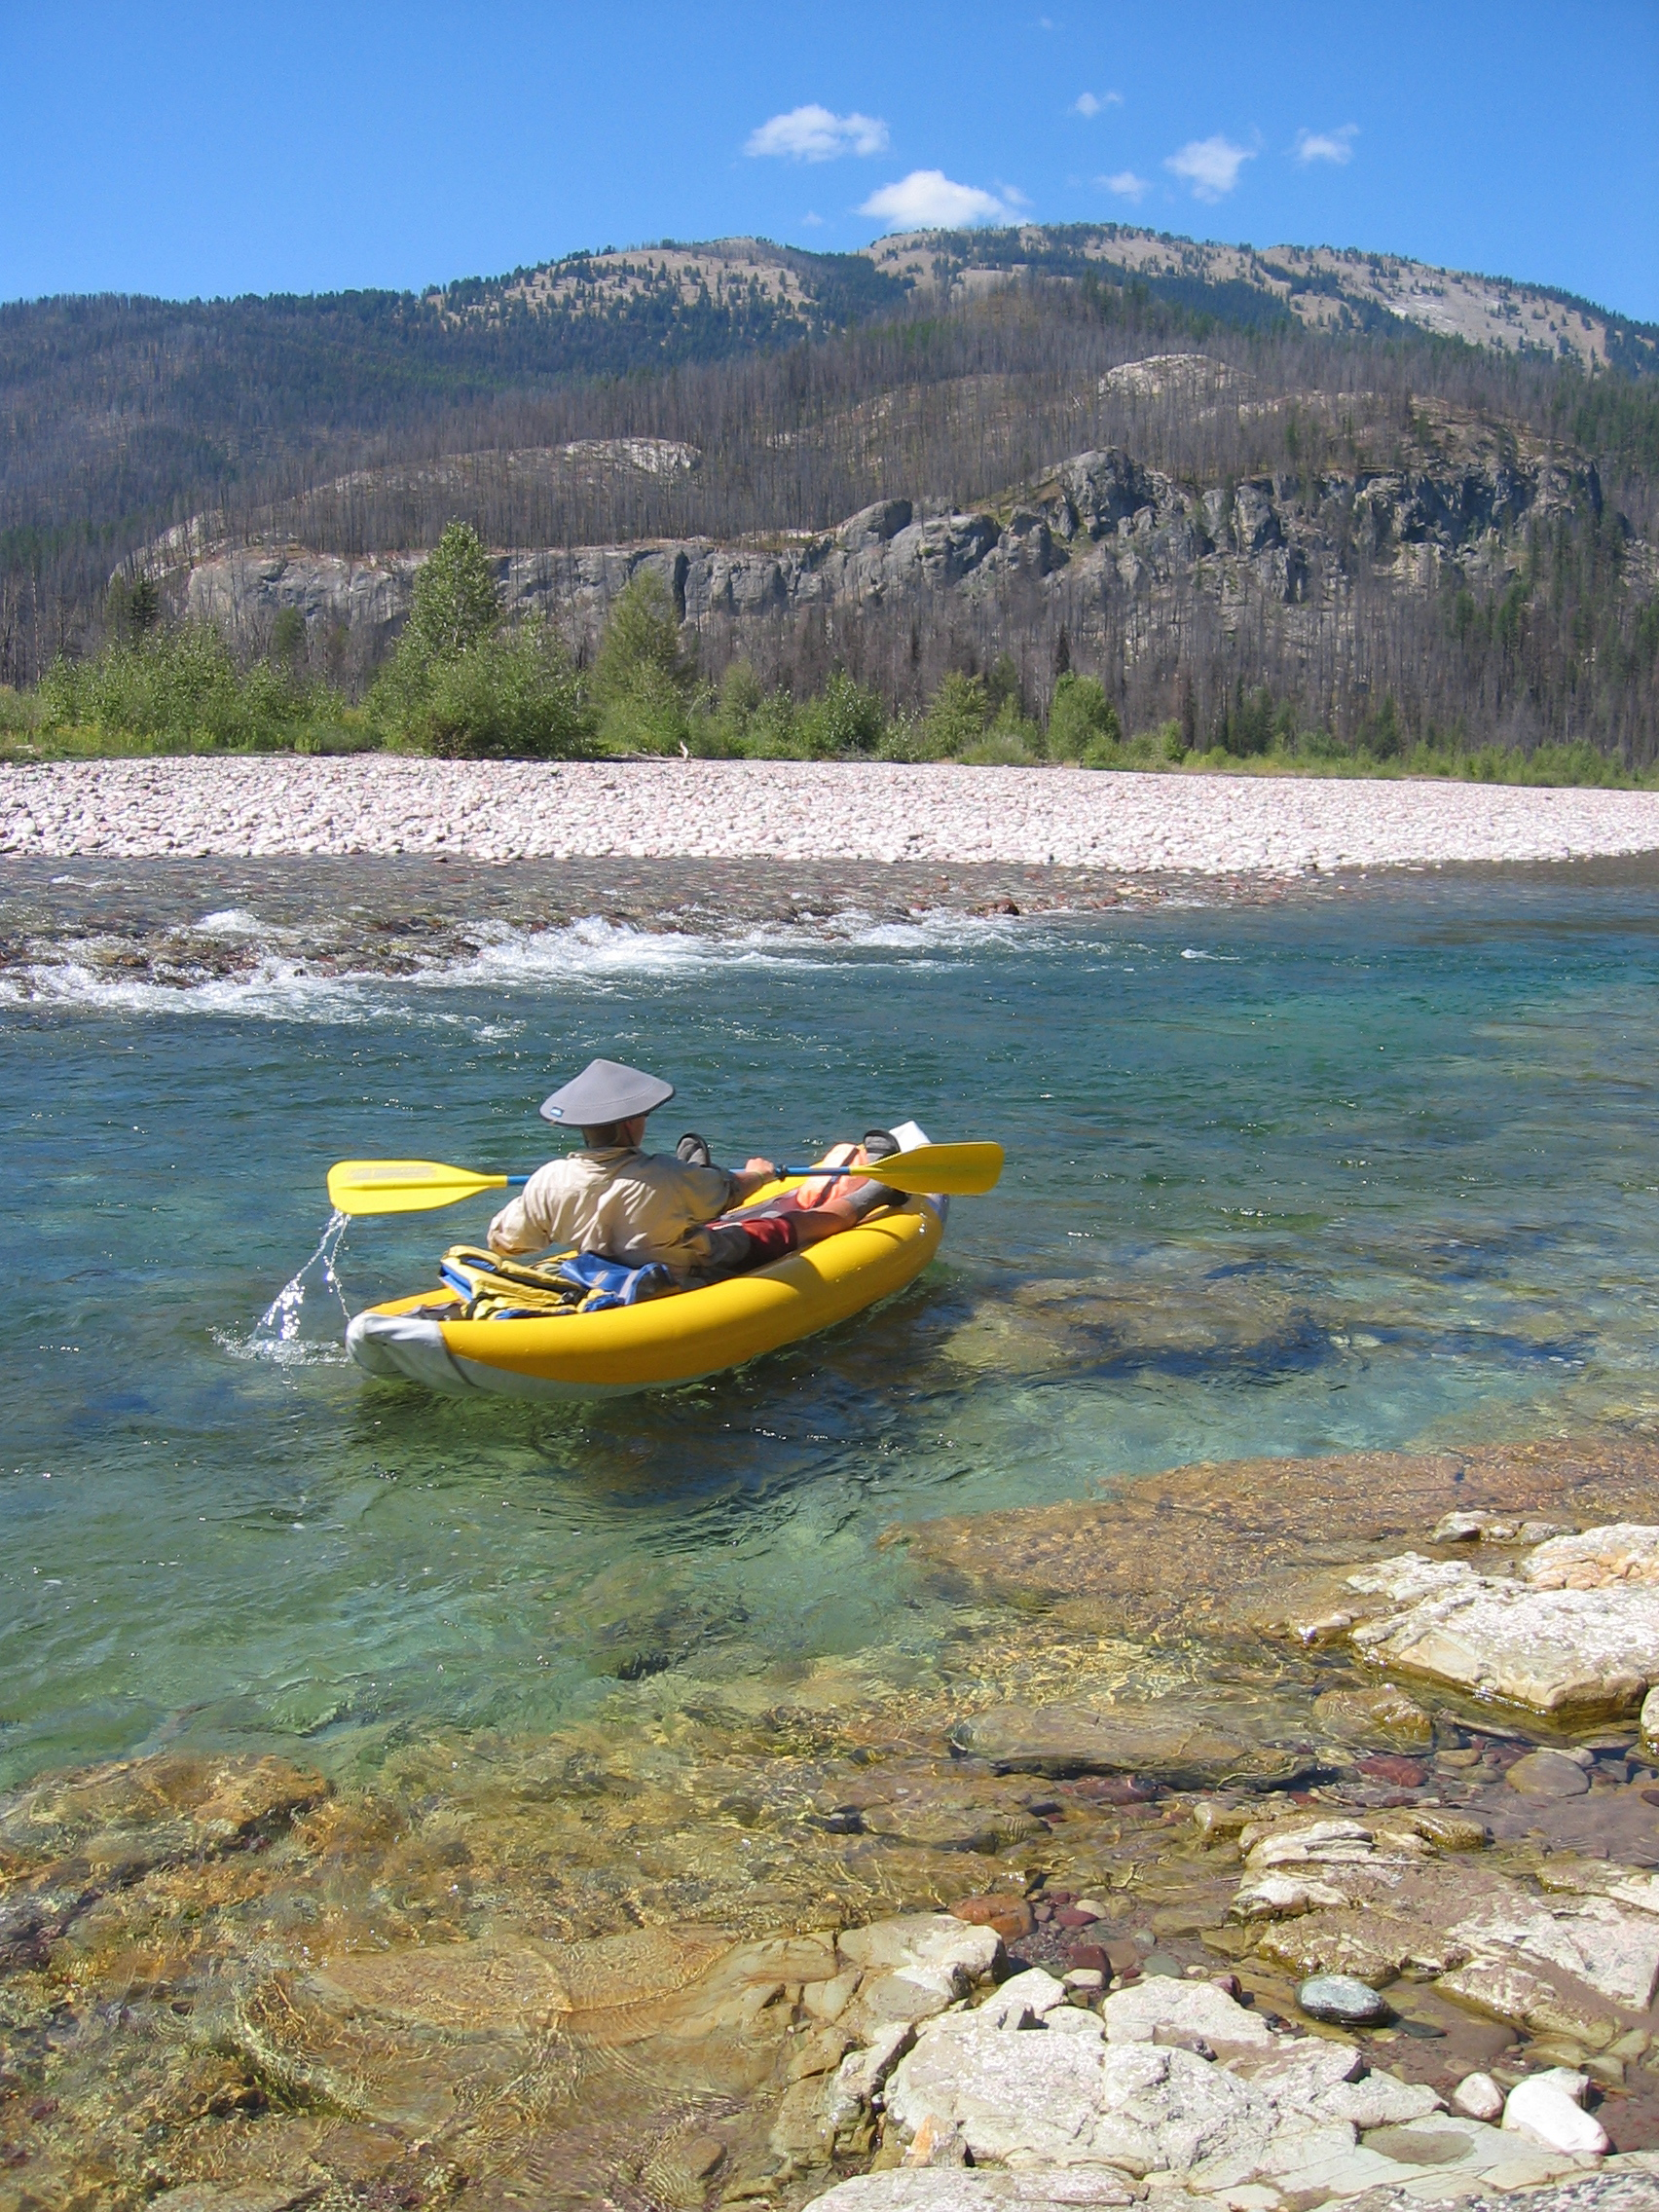 A kayaker floats on the South Fork of the Flathead River